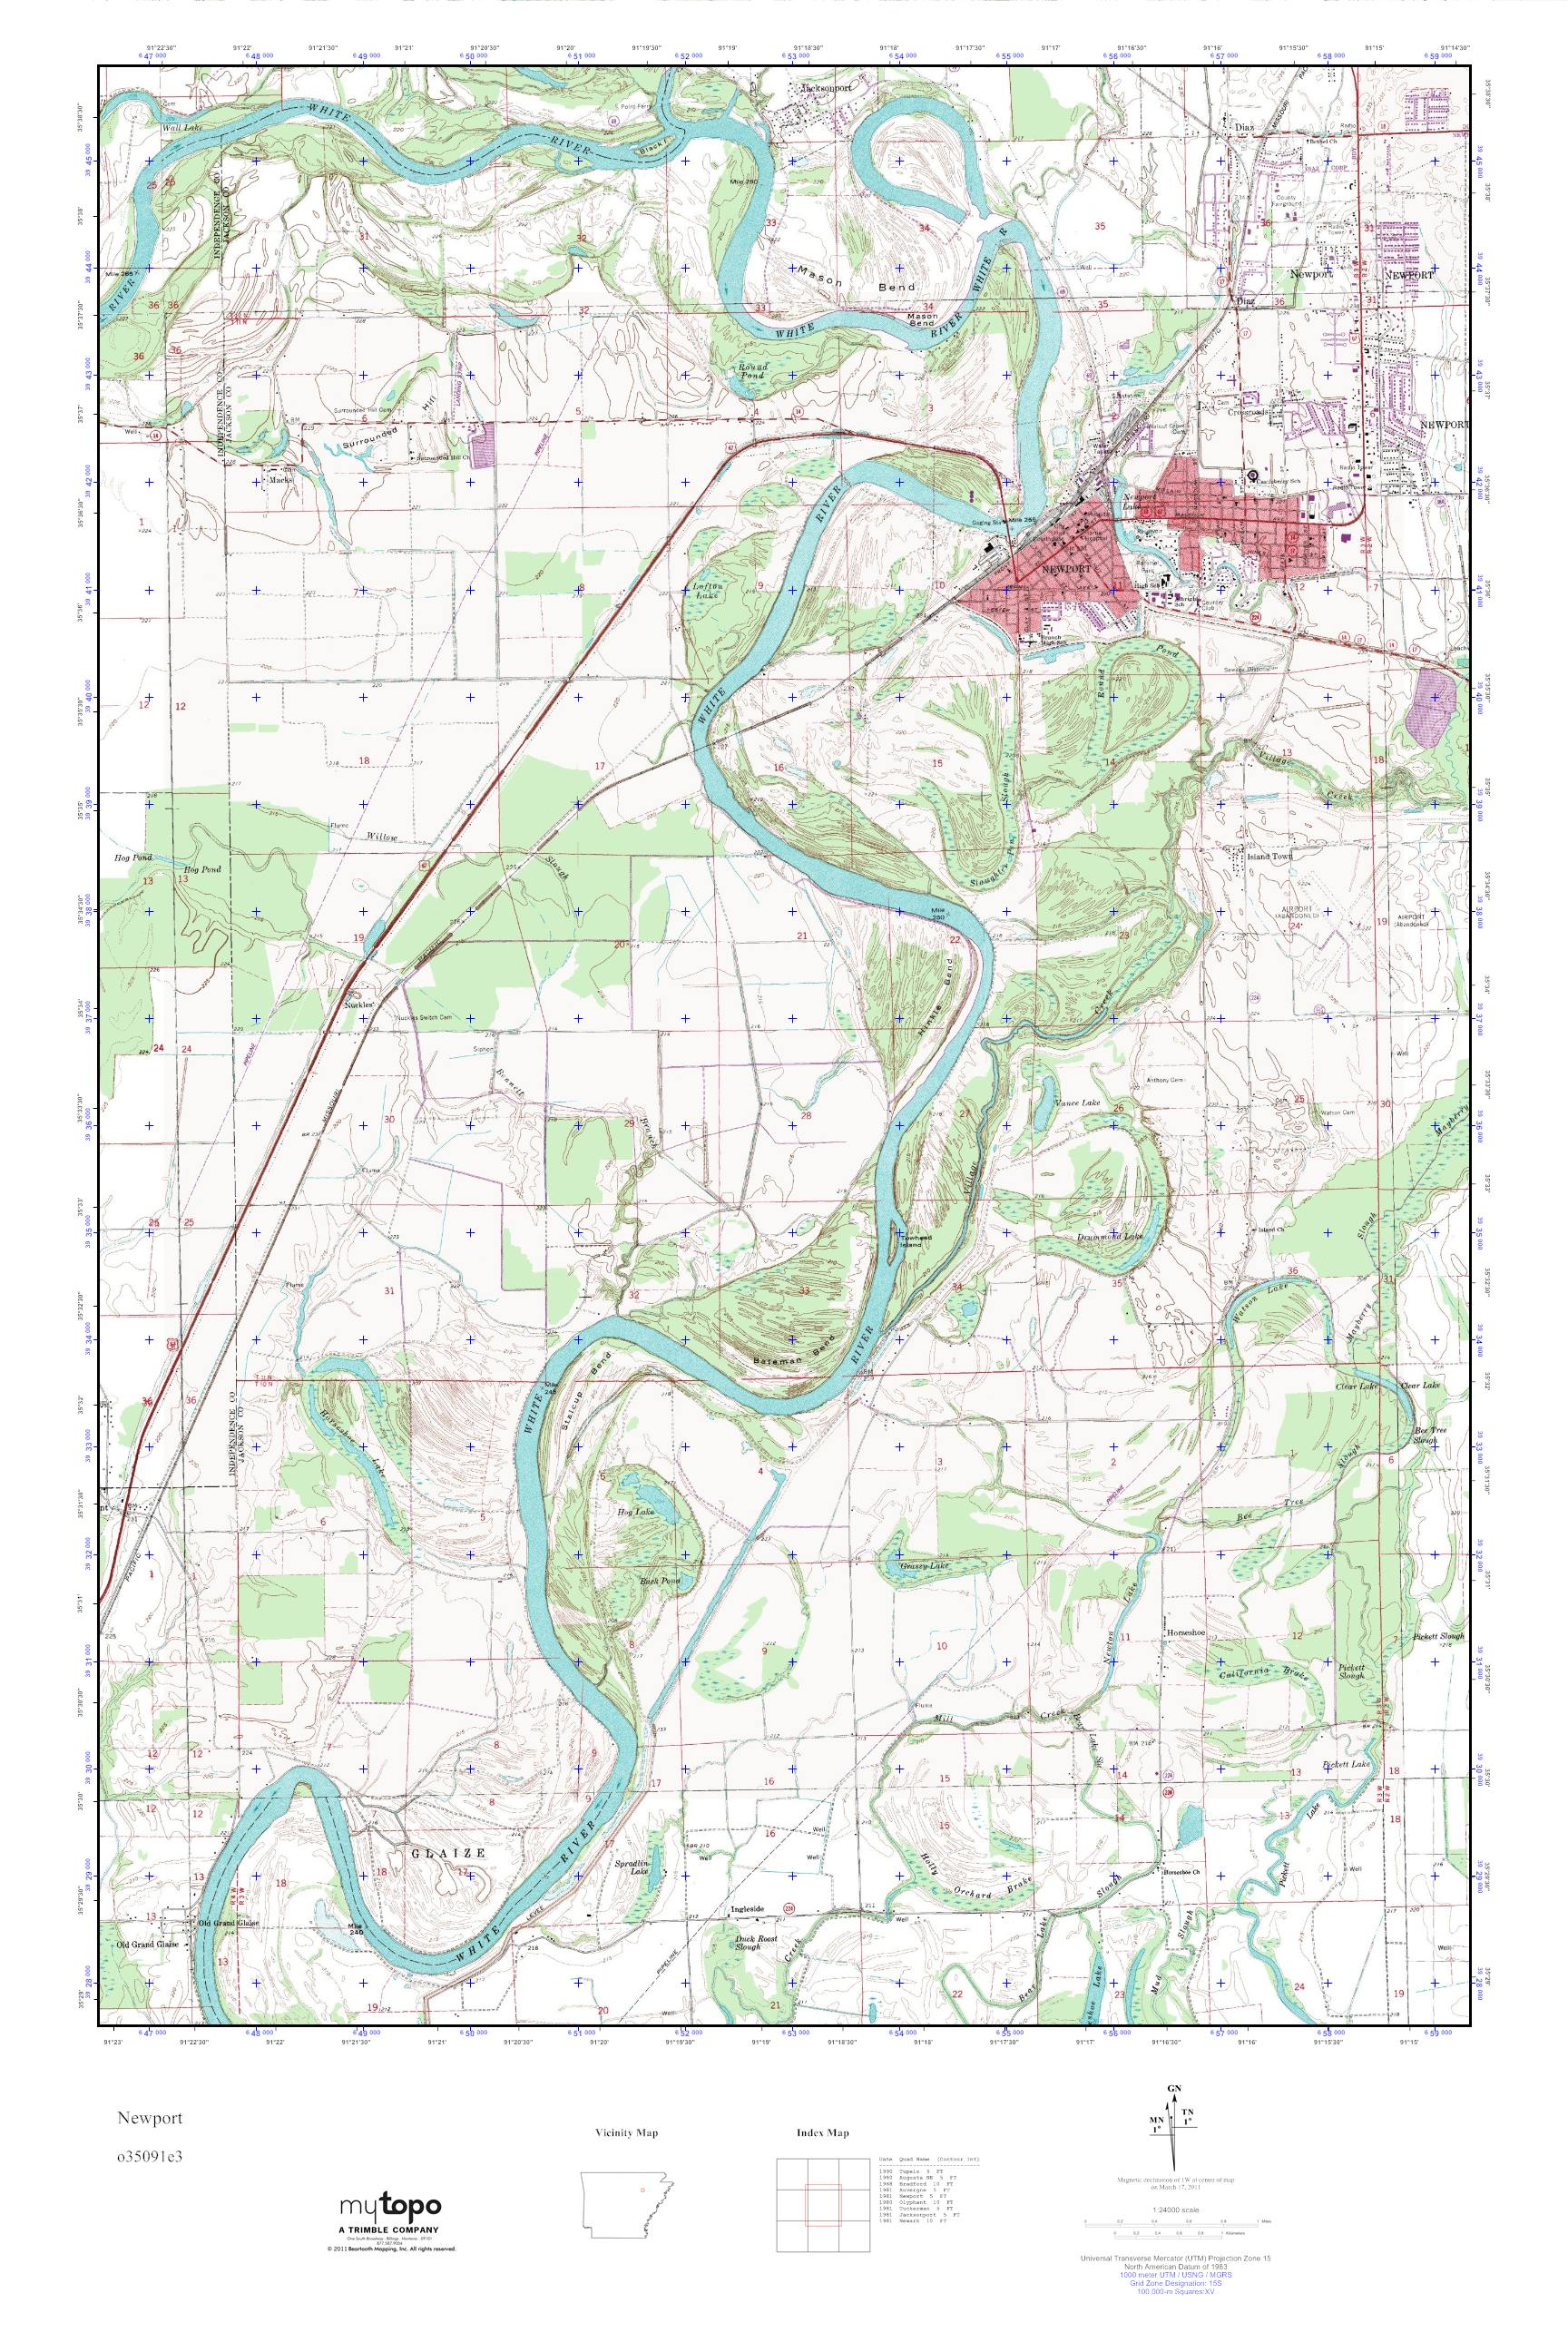 Mytopo Newport Arkansas Usgs Quad Topo Map